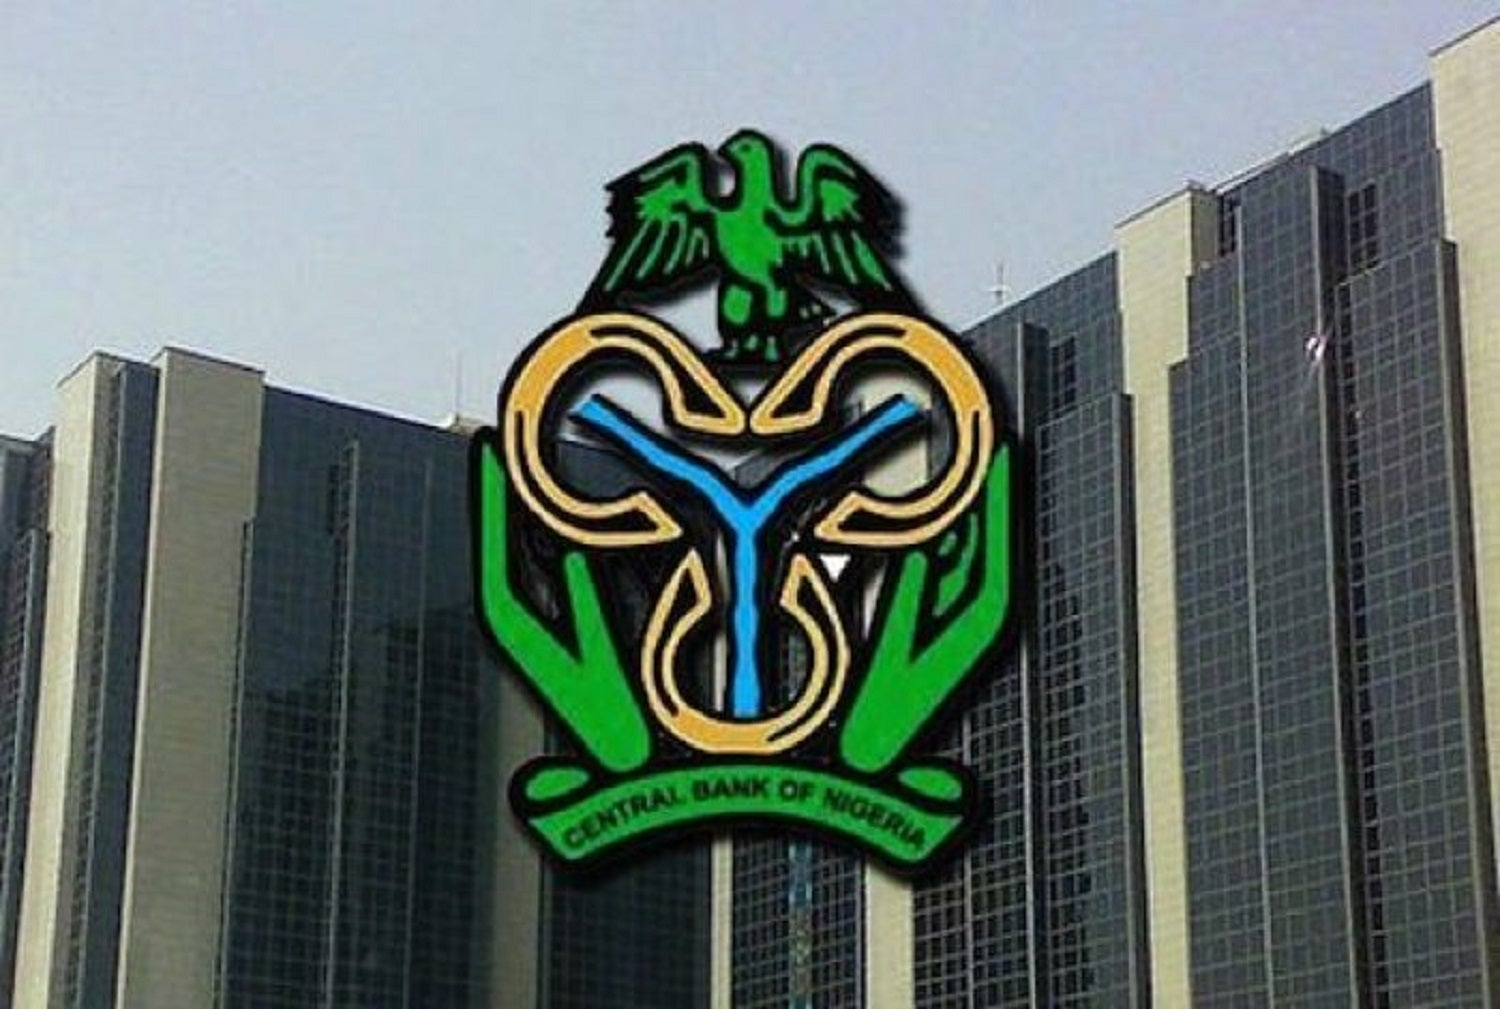 No ban on domiciliary account deposits, CBN clarifies